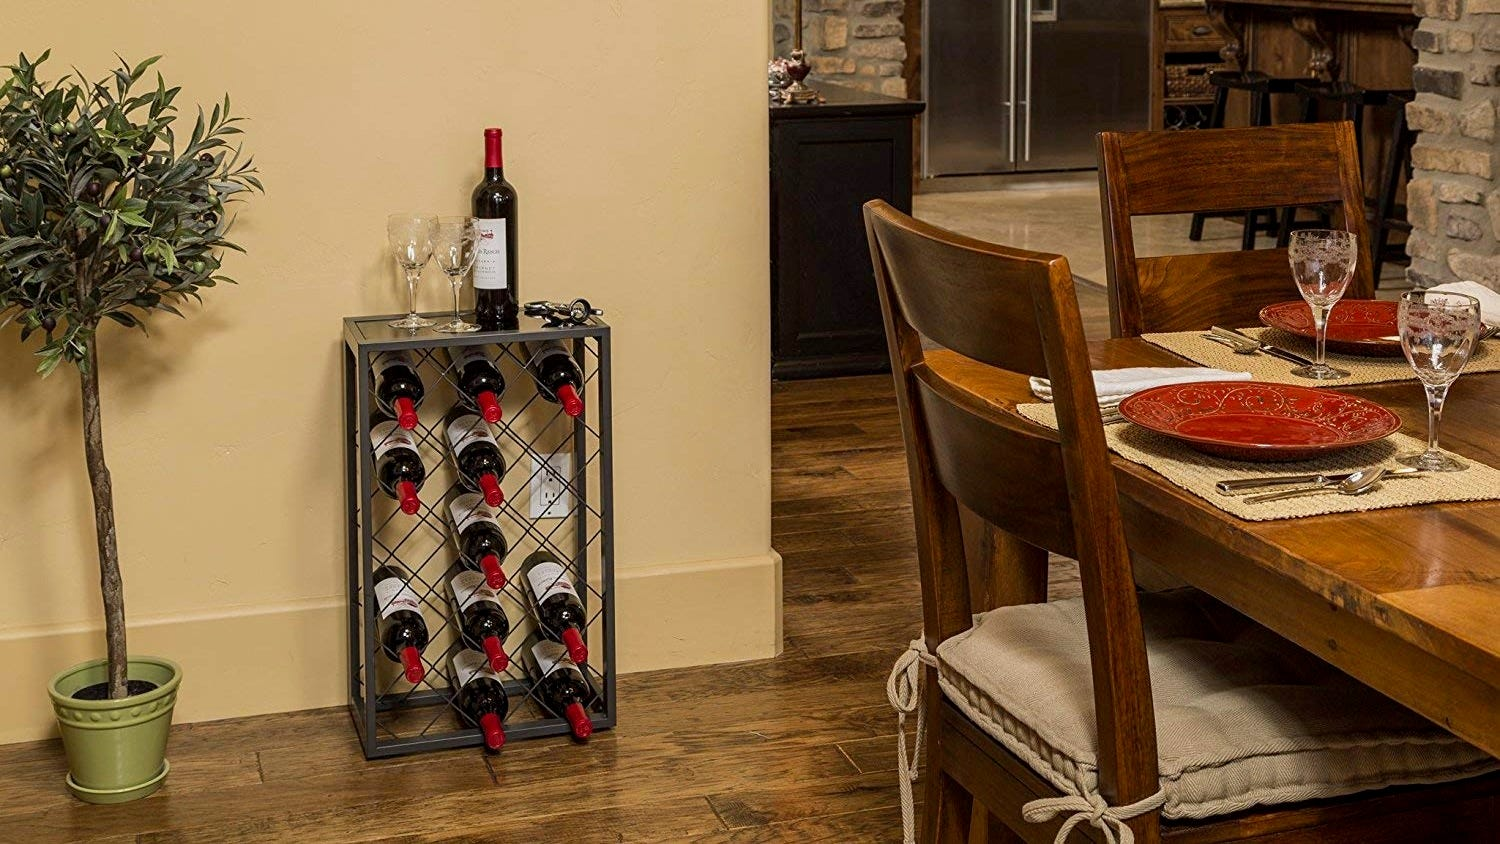 A freestanding wine rack against a wall in a dining room, next to a houseplant.